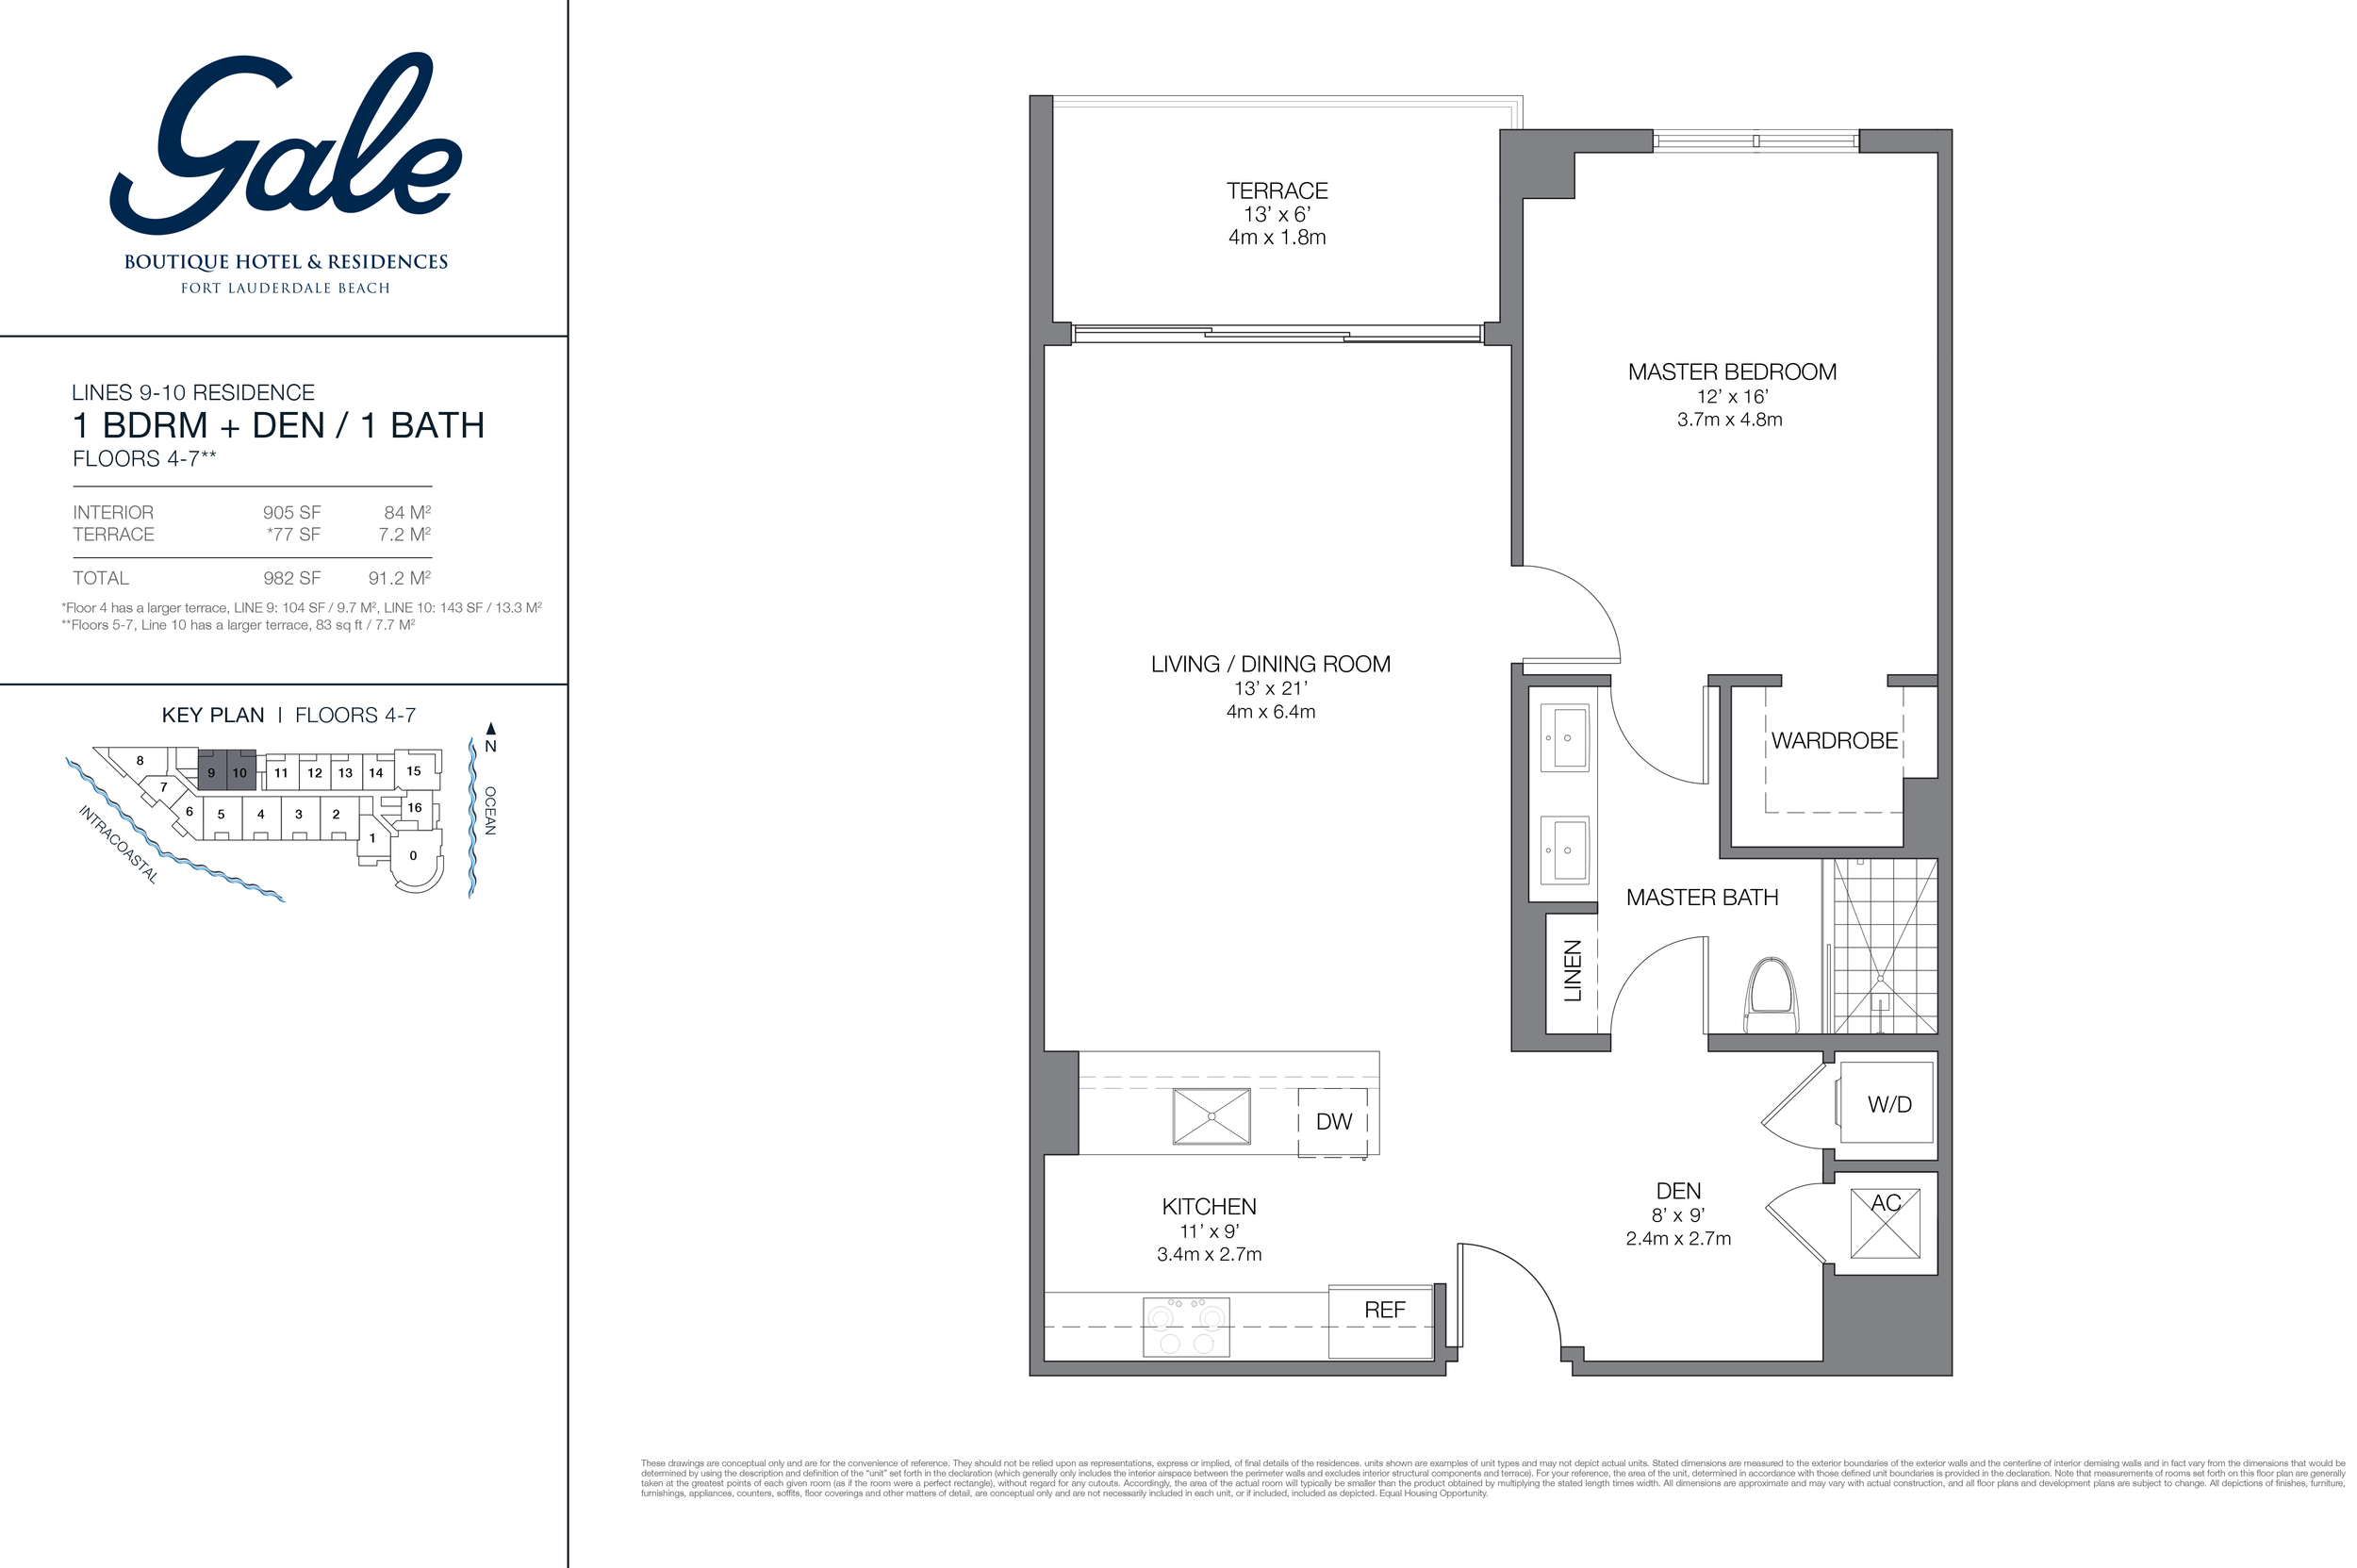 Gale Ft.Lauderdale Floor Plan Lines 9 and 10